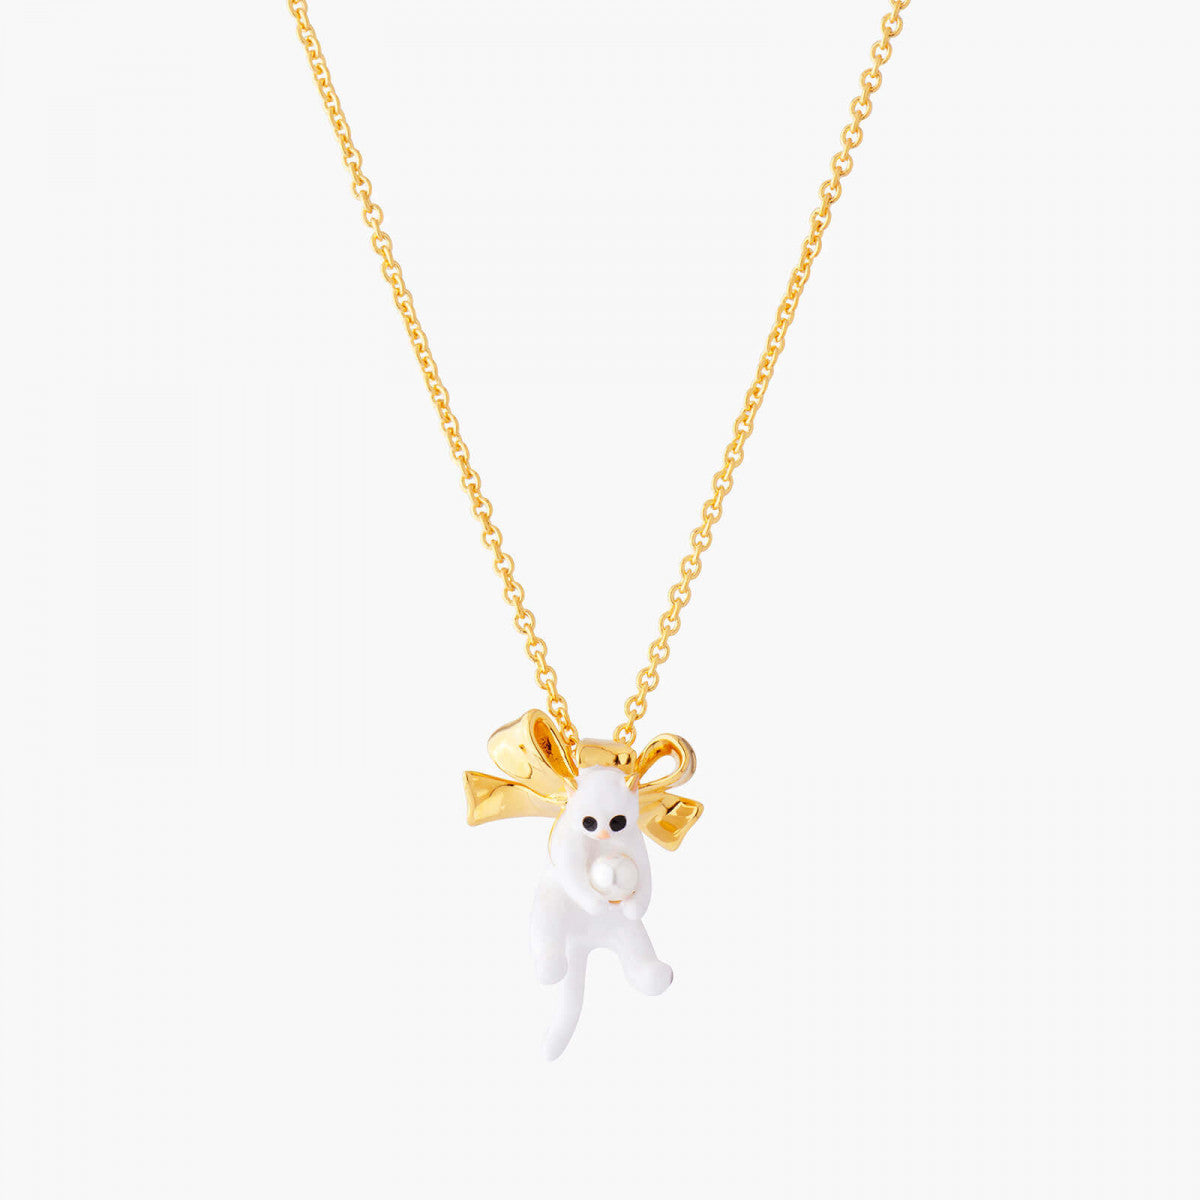 Kitty and Bow Pendant Necklace